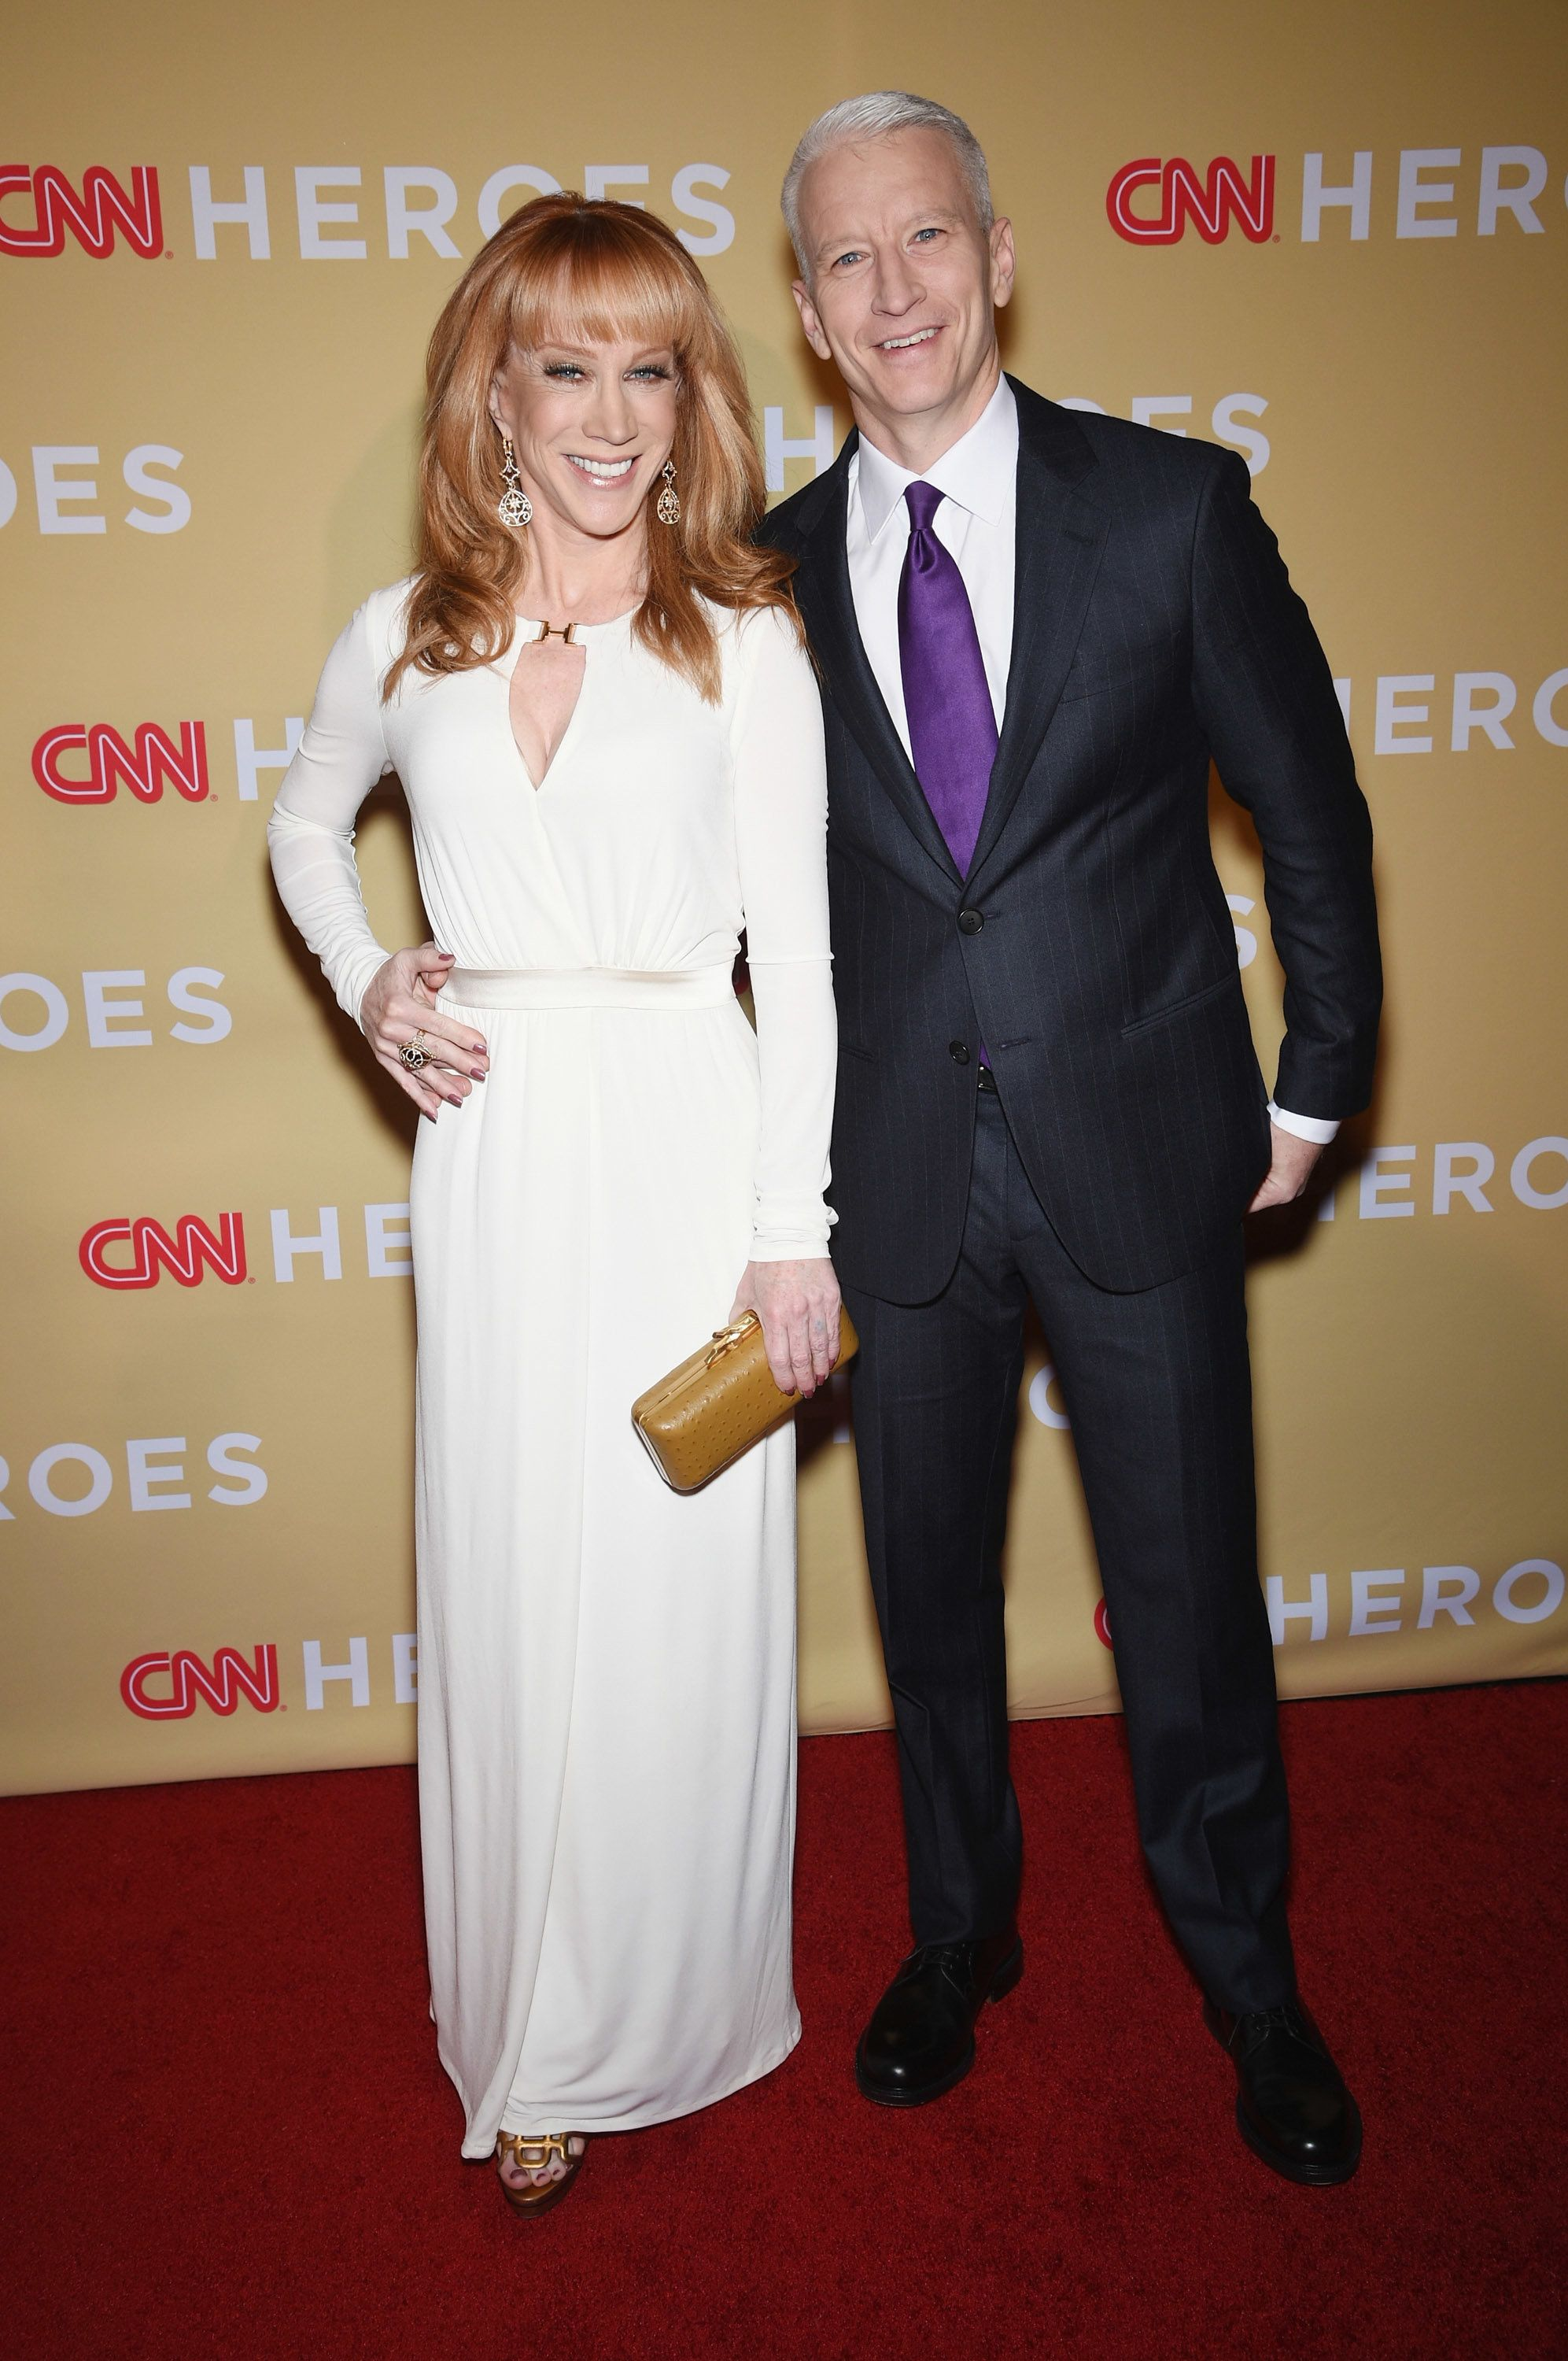 """Kathy Griffin said she was """"devastated"""" when Anderson Cooper turned his back on her following a controversial 2017 photo show"""